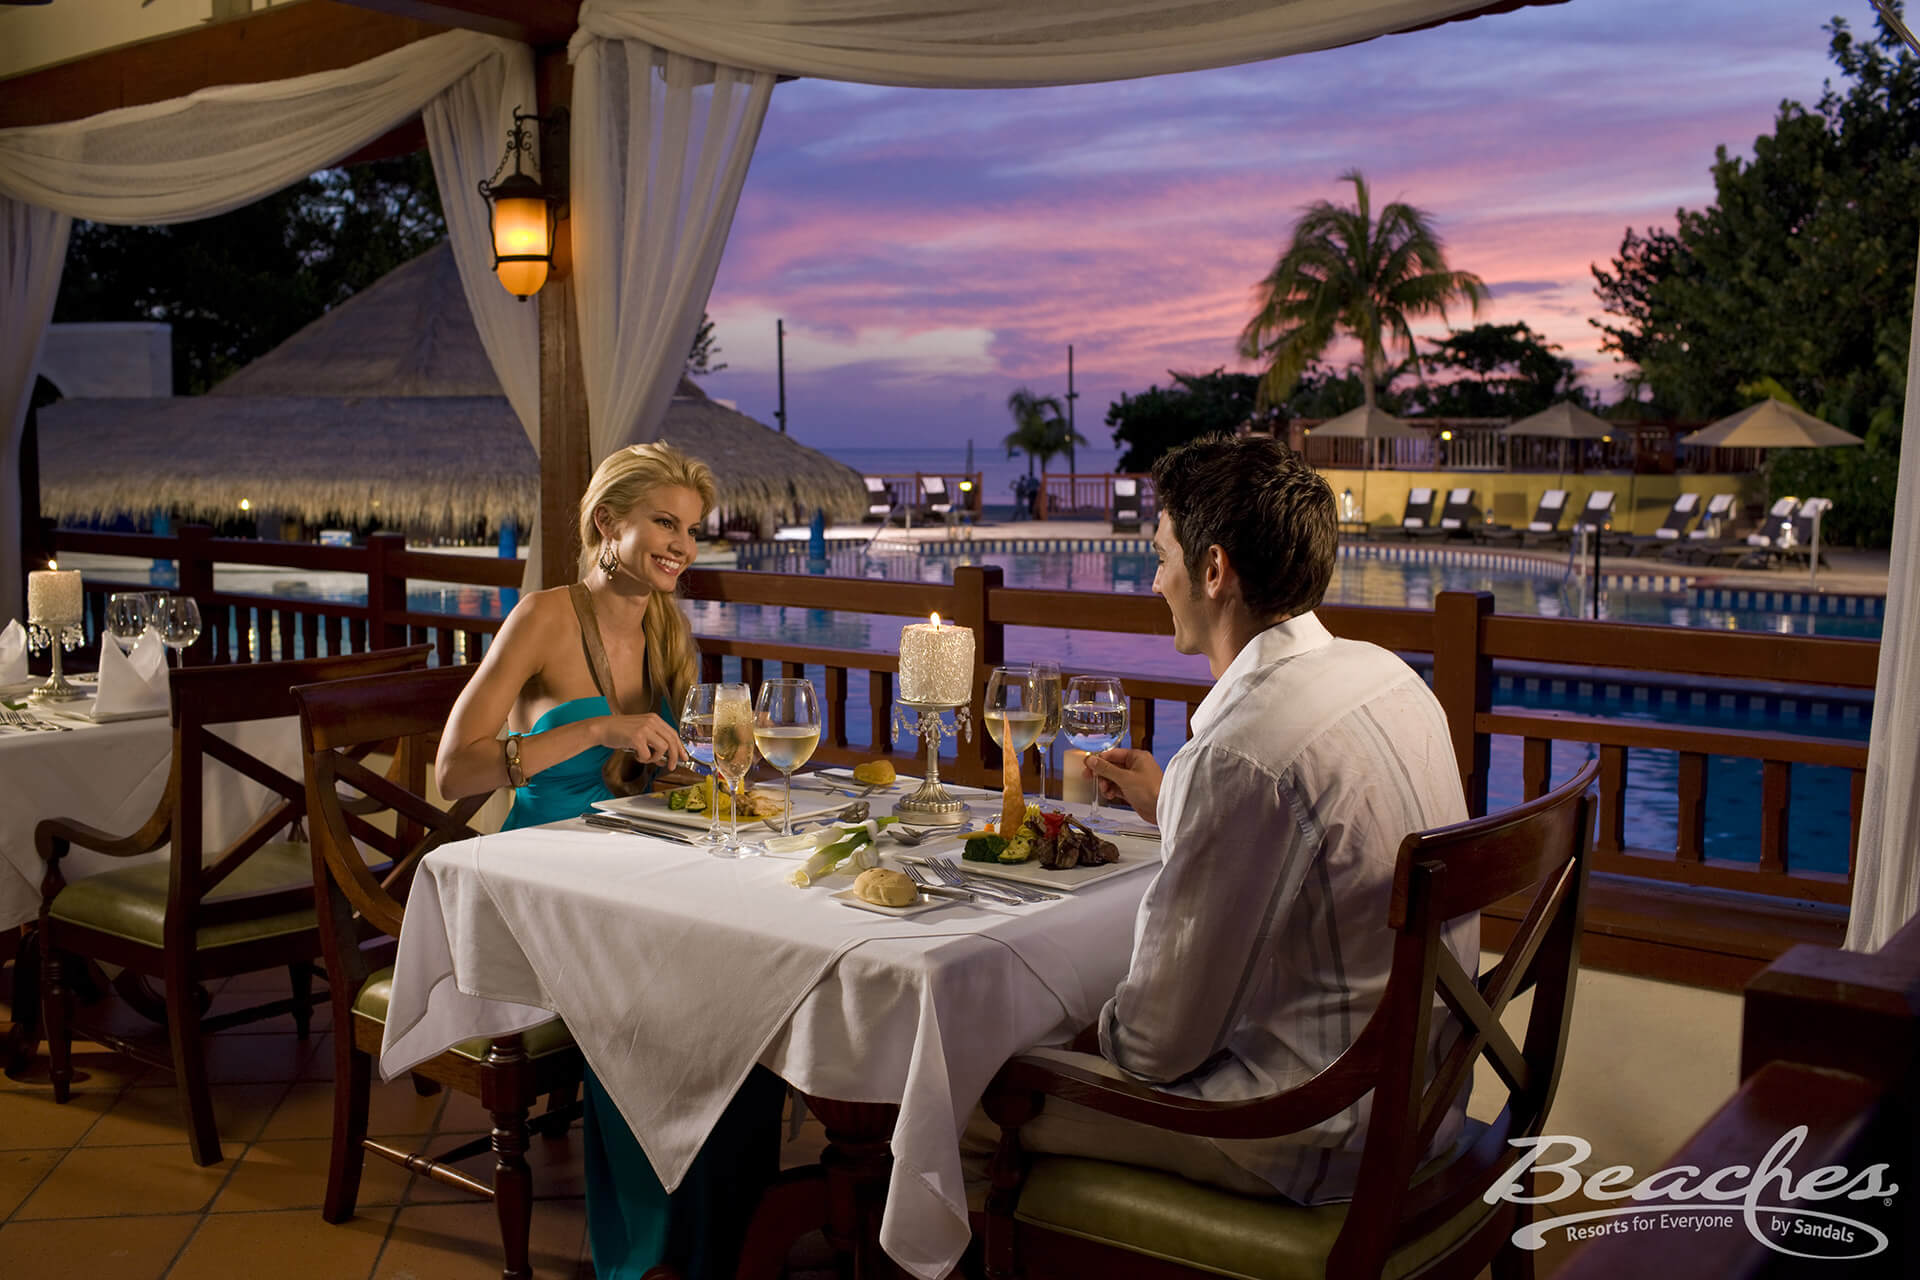 Couple dining at a restaurant at a Beaches All-Inclusive Resort by the pool in the evening